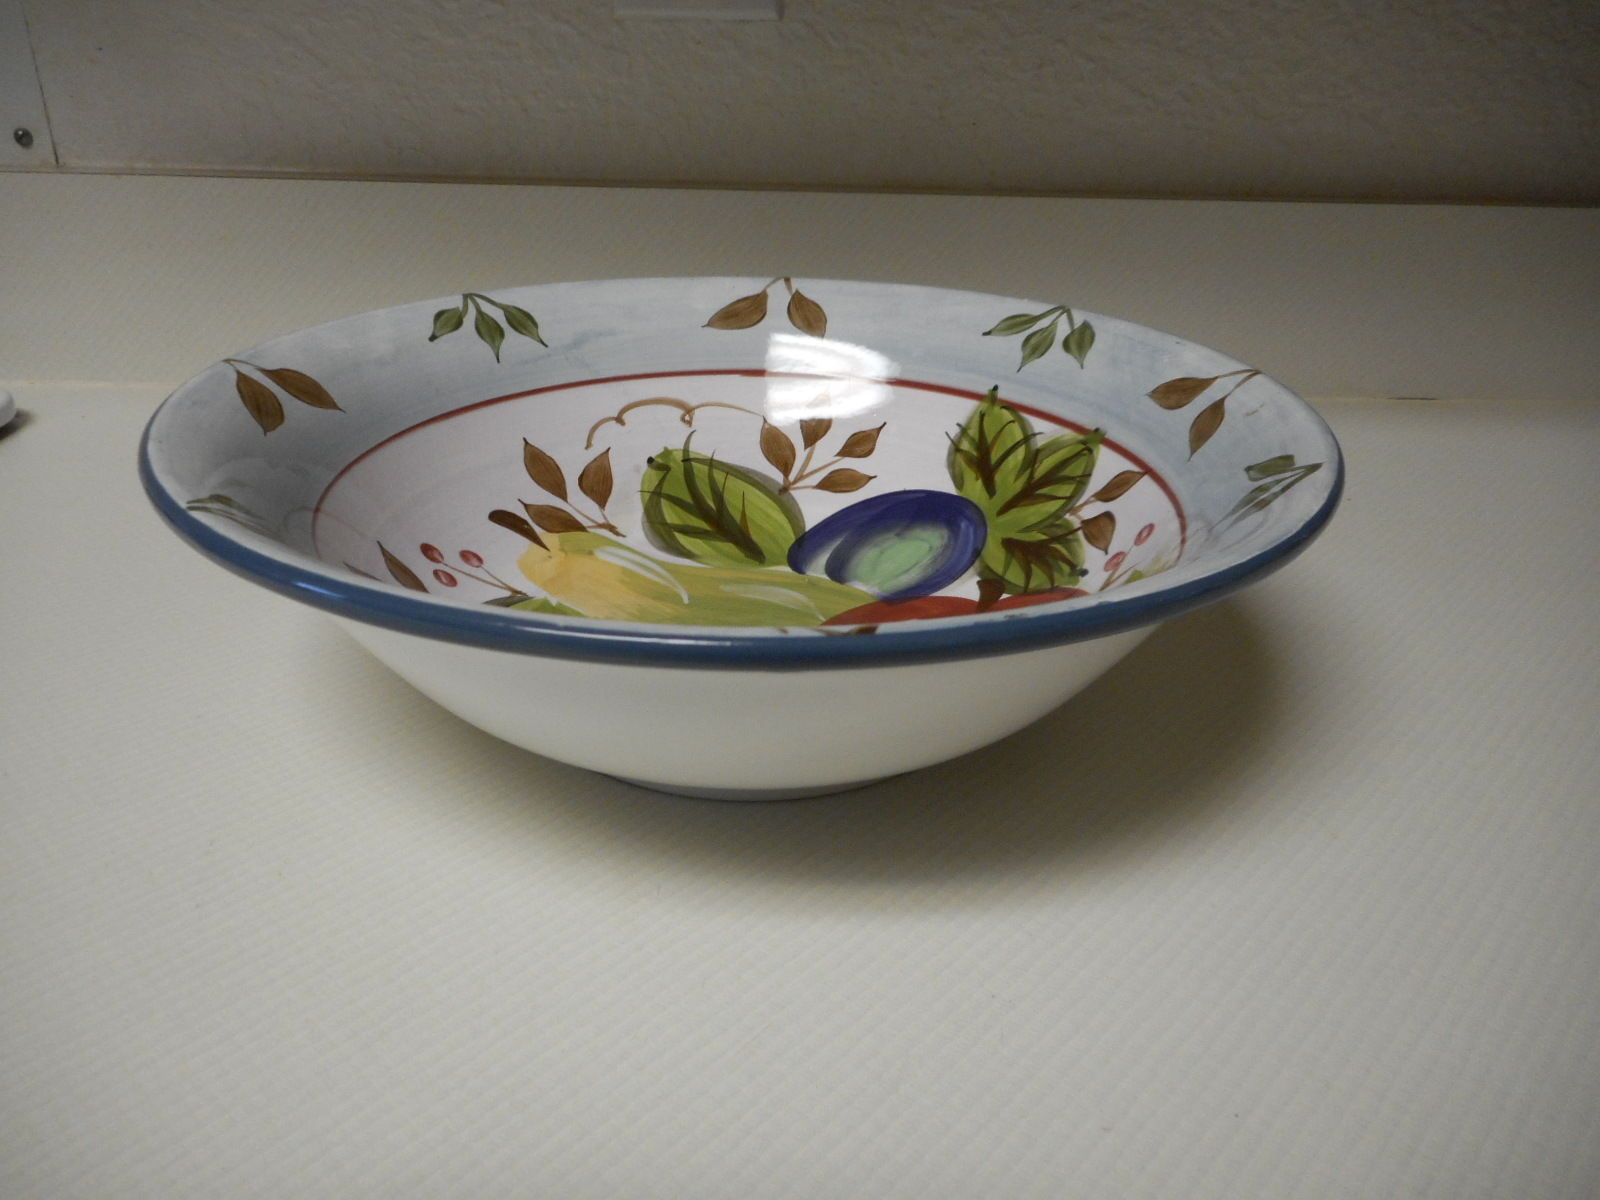 Heritage Mint Black Forest Fruit Large Serving Bowl 11 3/4 Inch Stoneware